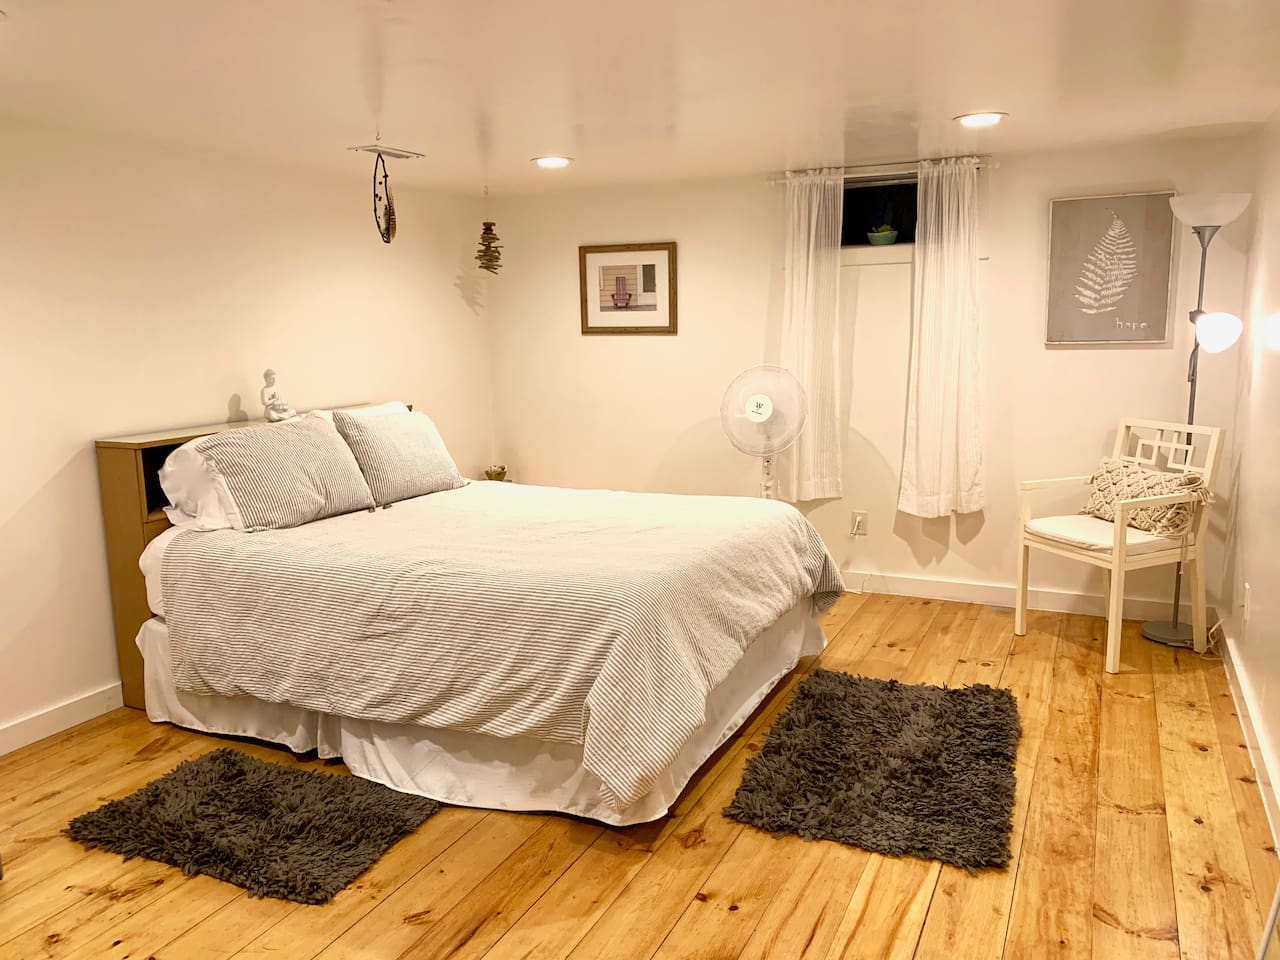 "Lovingly called the ""Earth Room,"" one of these two rooms includes a dreamcatcher and driftwood mobile made by a local artisan here on Martha's Vineyard!"